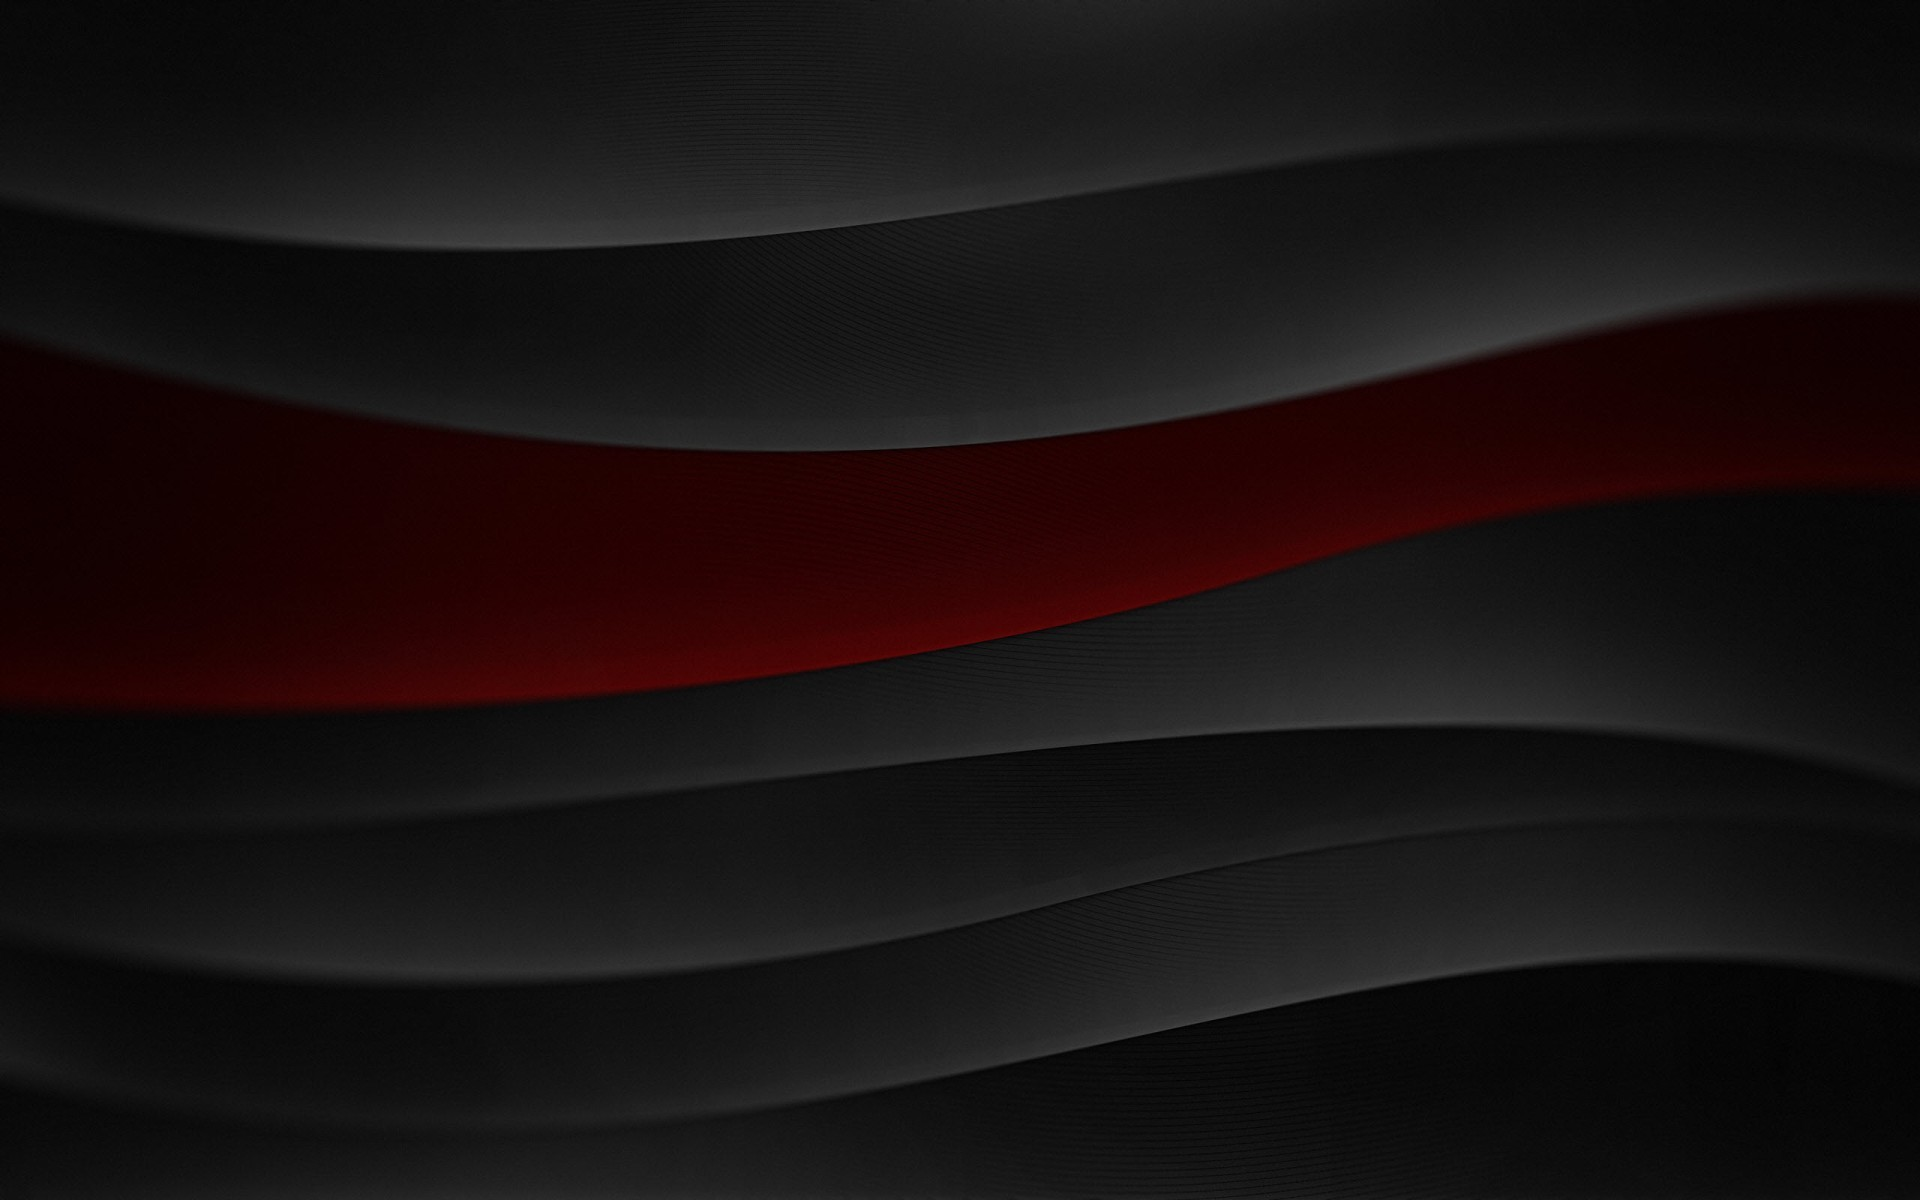 1920x1080 Windows 7 Wallpaper Black And Red